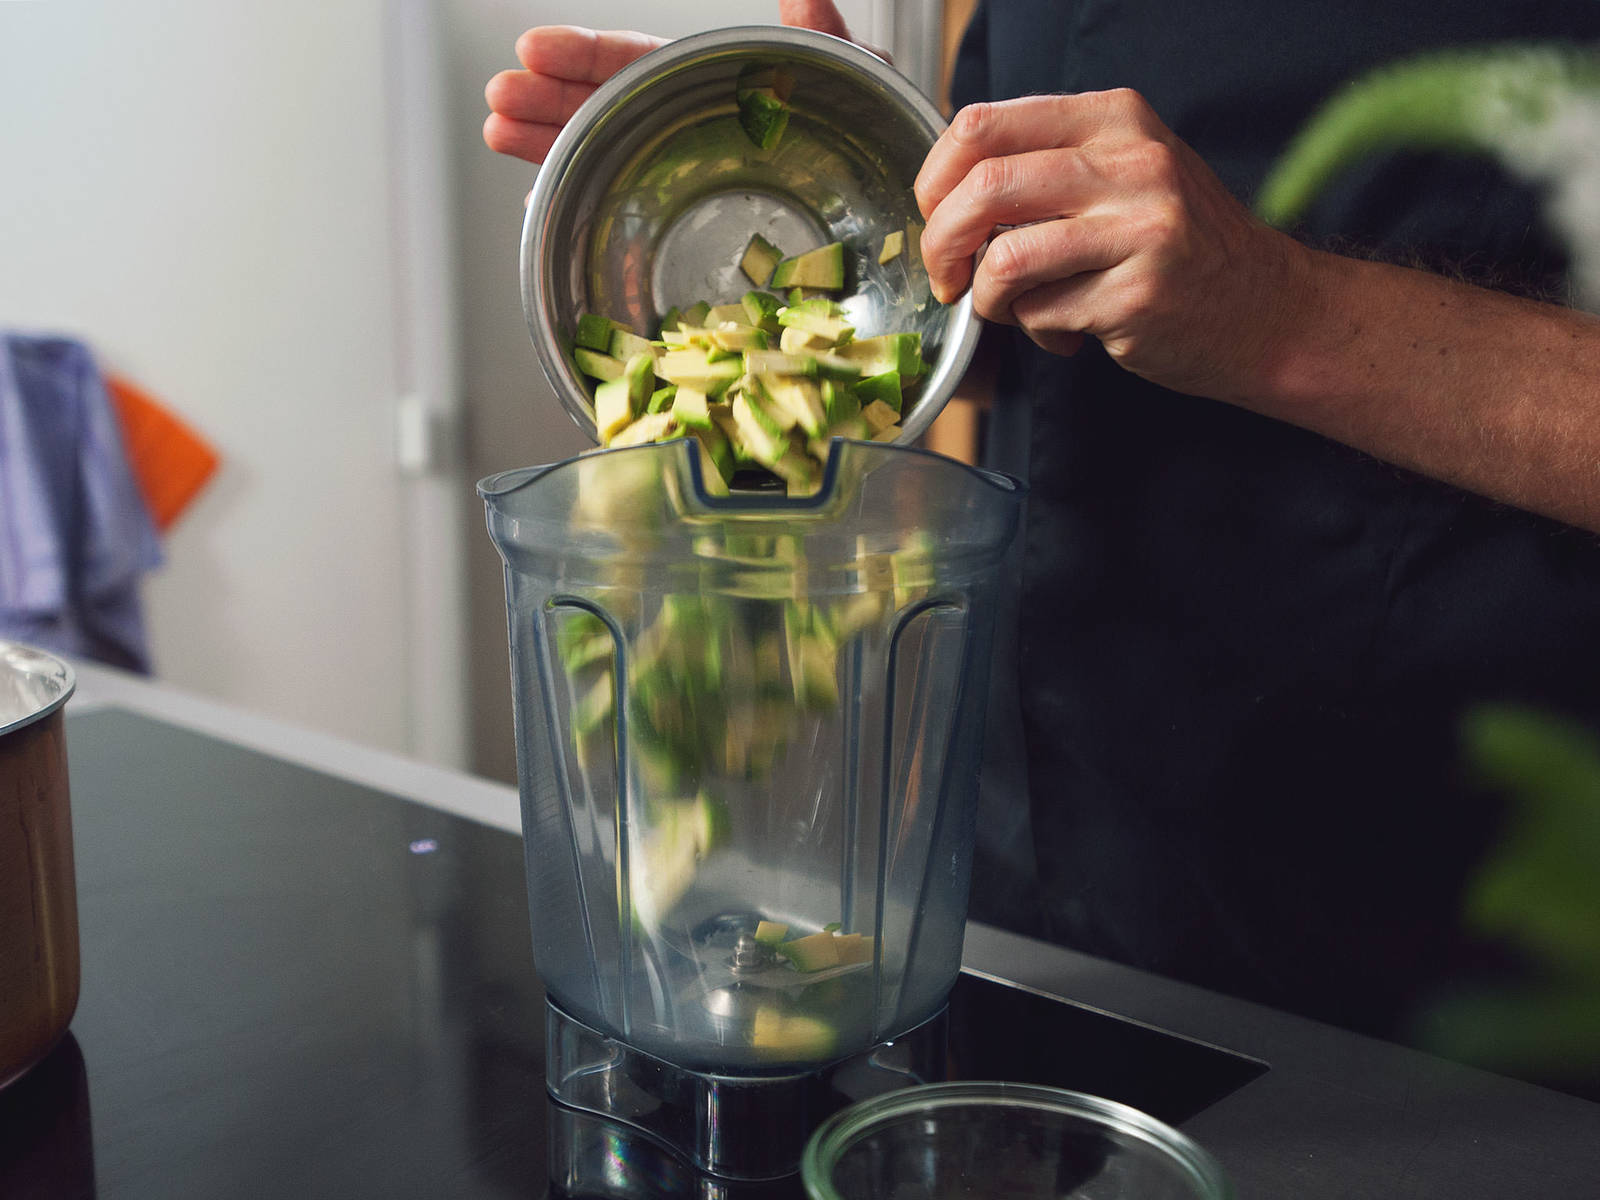 In the meantime, make the sauce and prepare the toppings. Peel avocado and remove the pit. Cut avocado flesh into small pieces. Cut tomatoes into quarters and roughly chop arugula. Set tomatoes and arugula aside for serving. Peel garlic clove and chop onion. Transfer avocado to a food processor or blender.